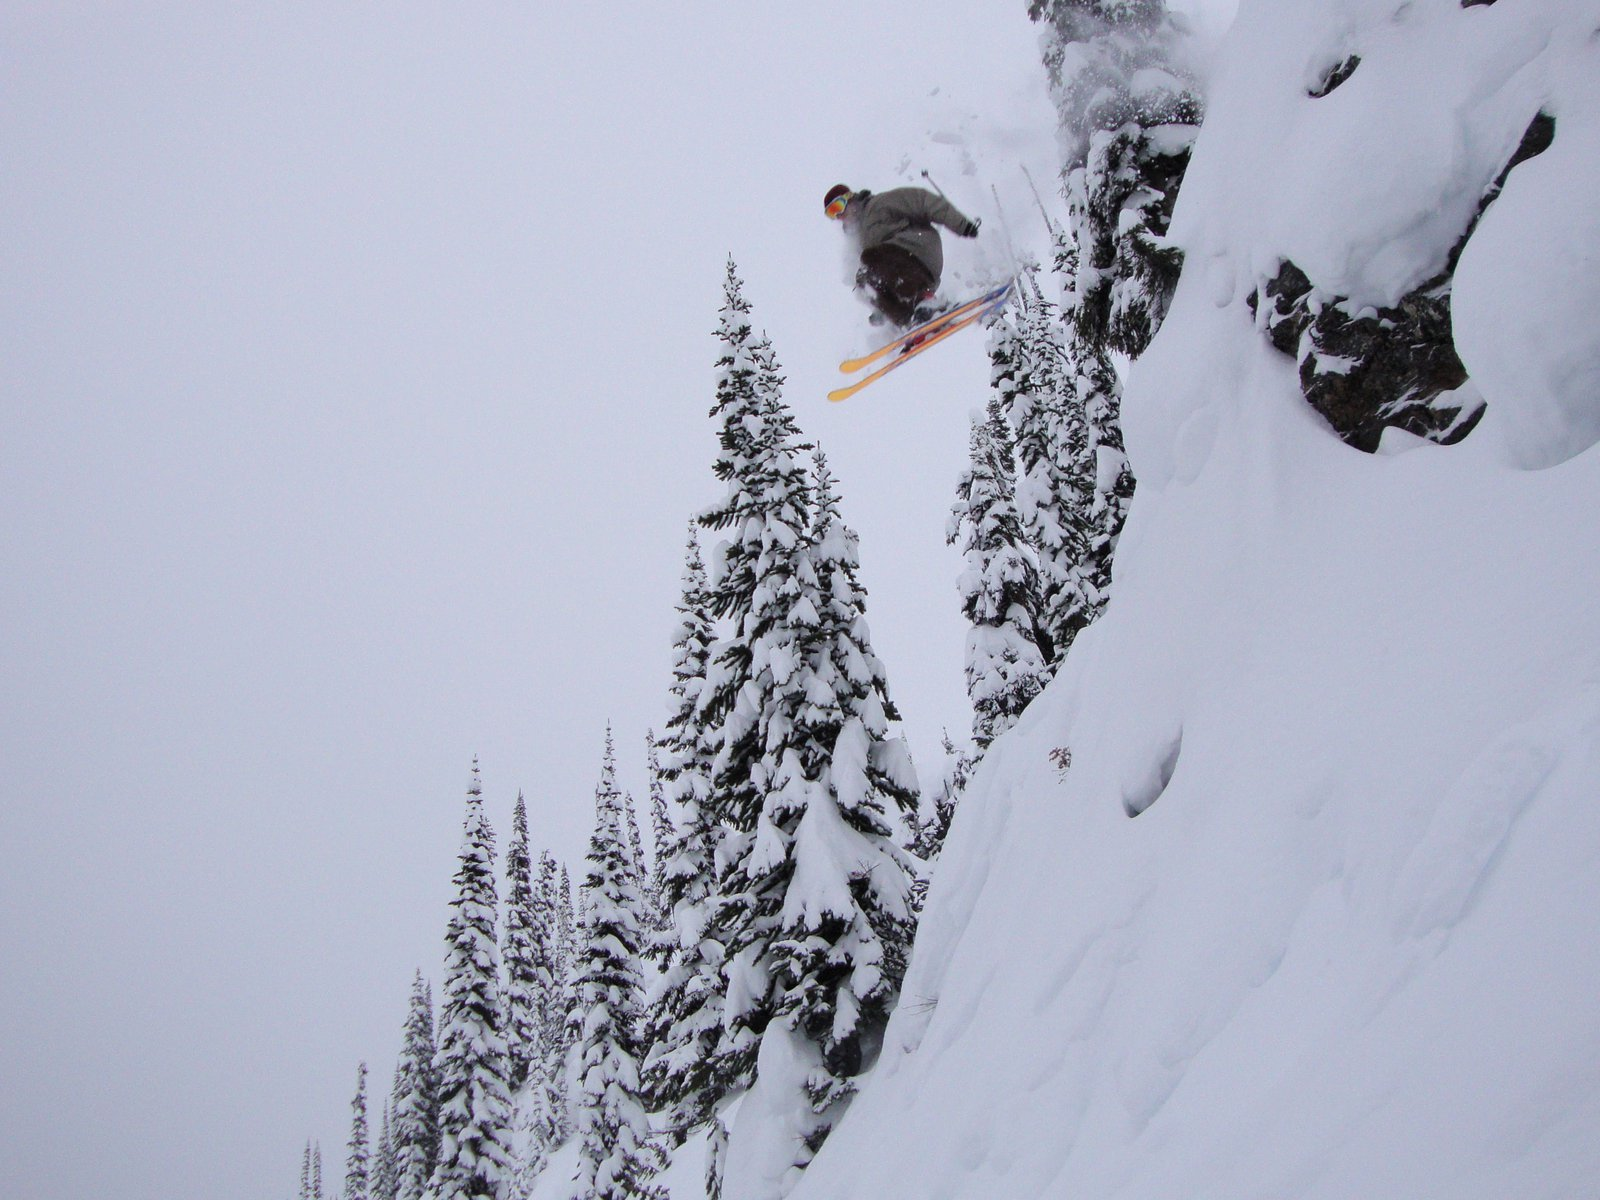 Fun dayz in revelstoke